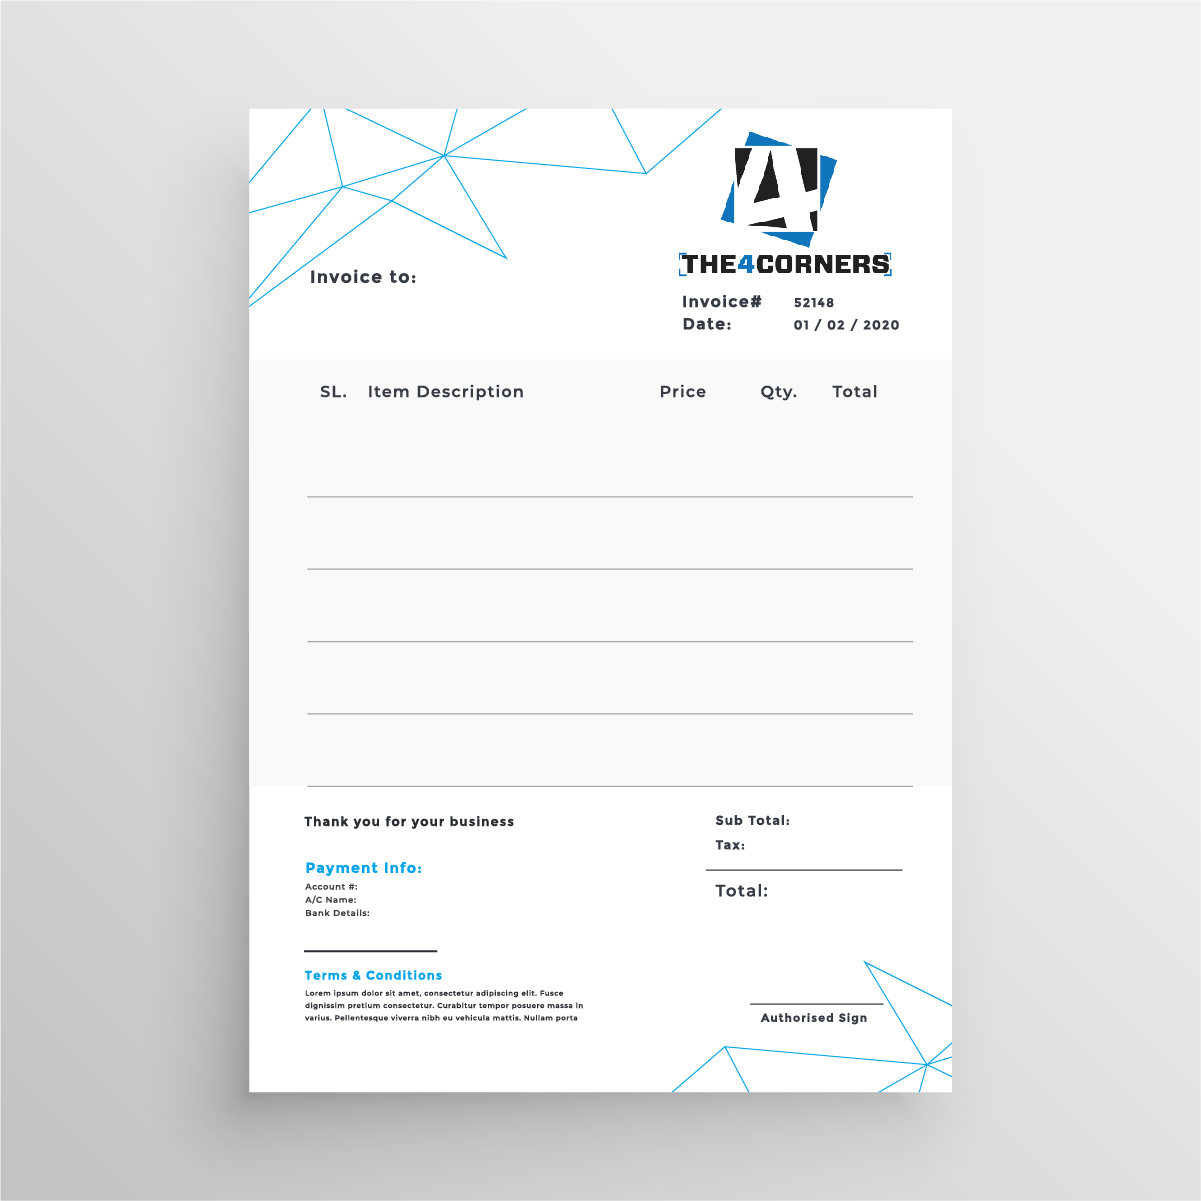 Invoice design for ecommerce company by Badri Design